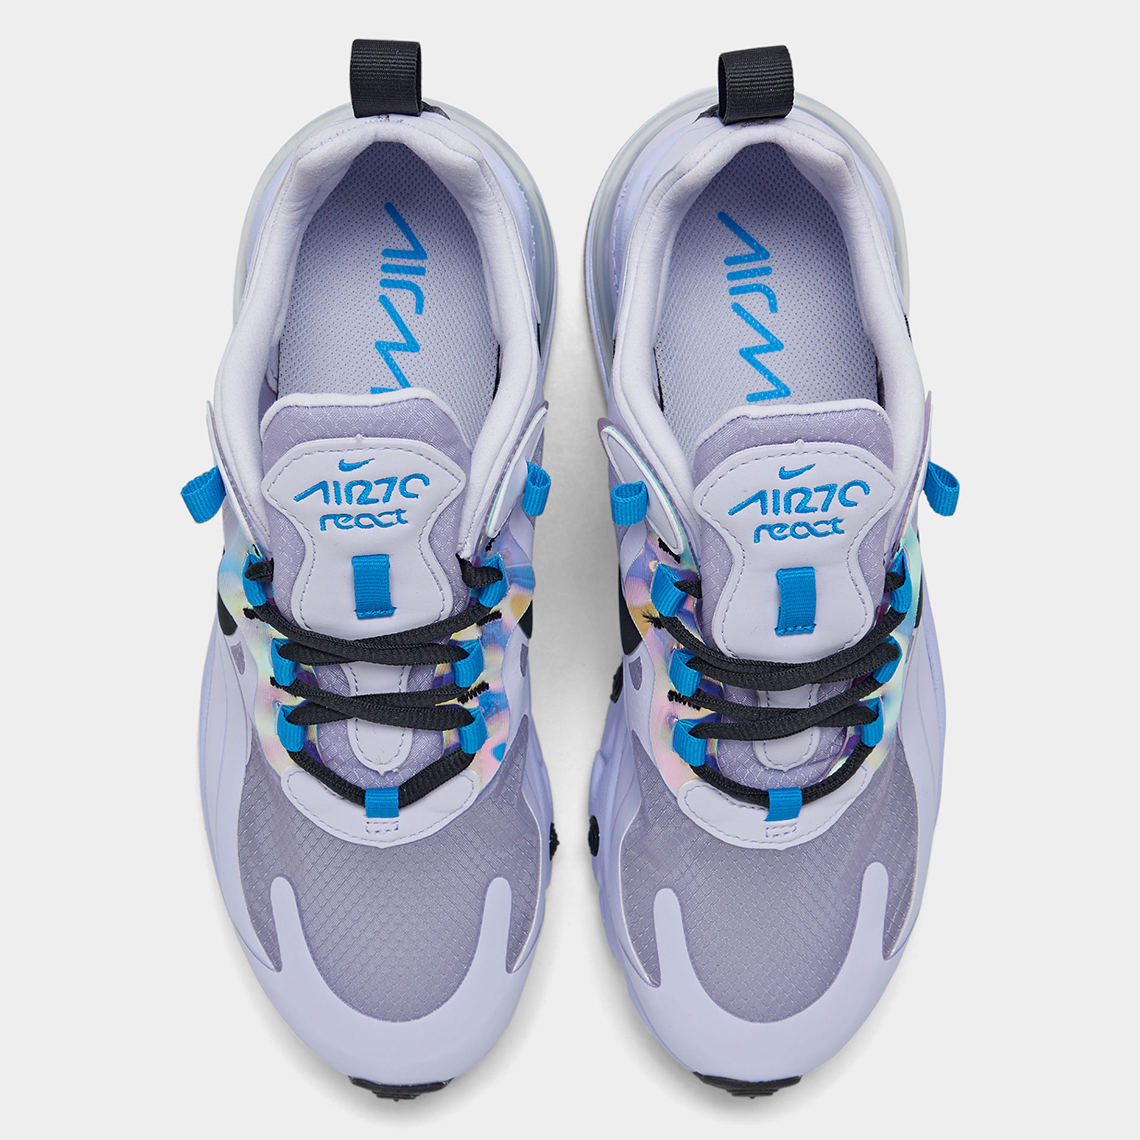 """Nike Air Max 270 React """"Amethyst Tint"""" Drops Soon: Official Images"""